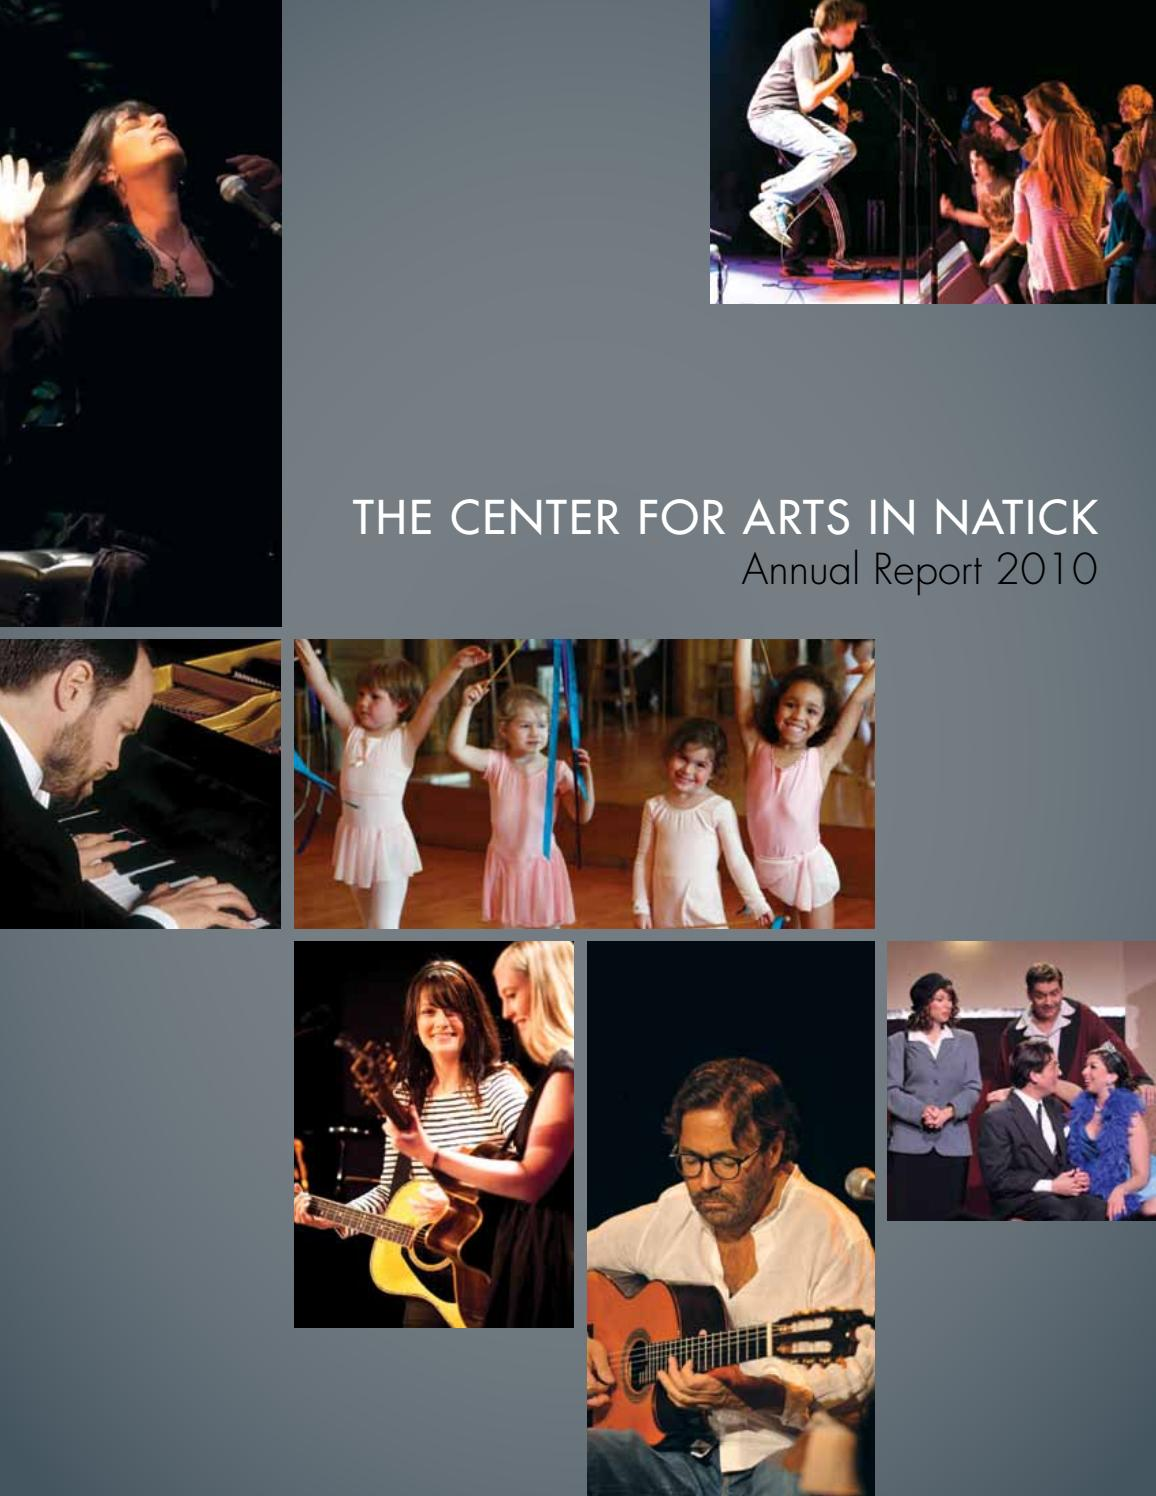 The Center for Arts in Natick Annual Report 2010 by natickarts - issuu